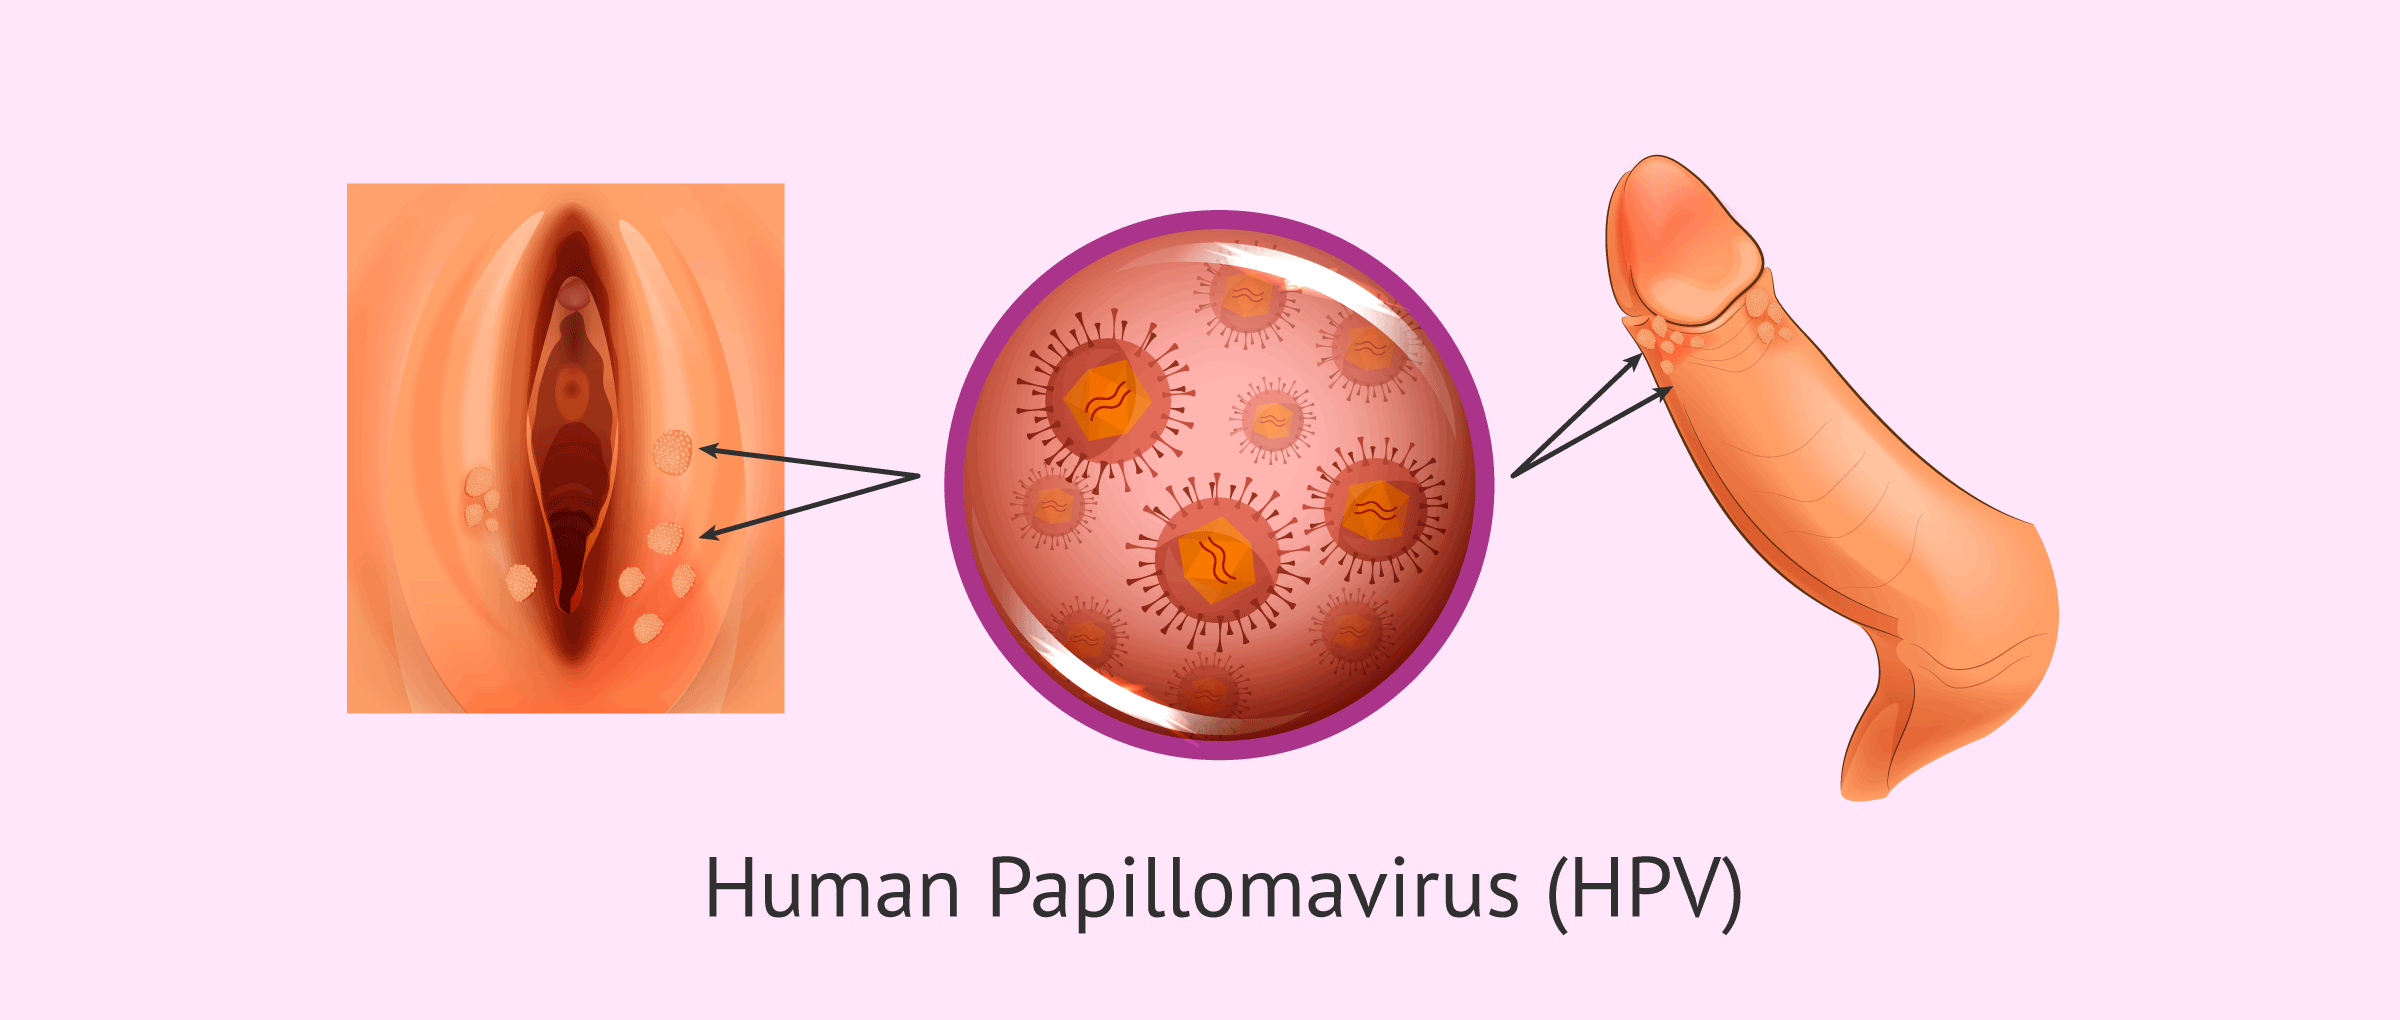 hpv genital warts cancer)